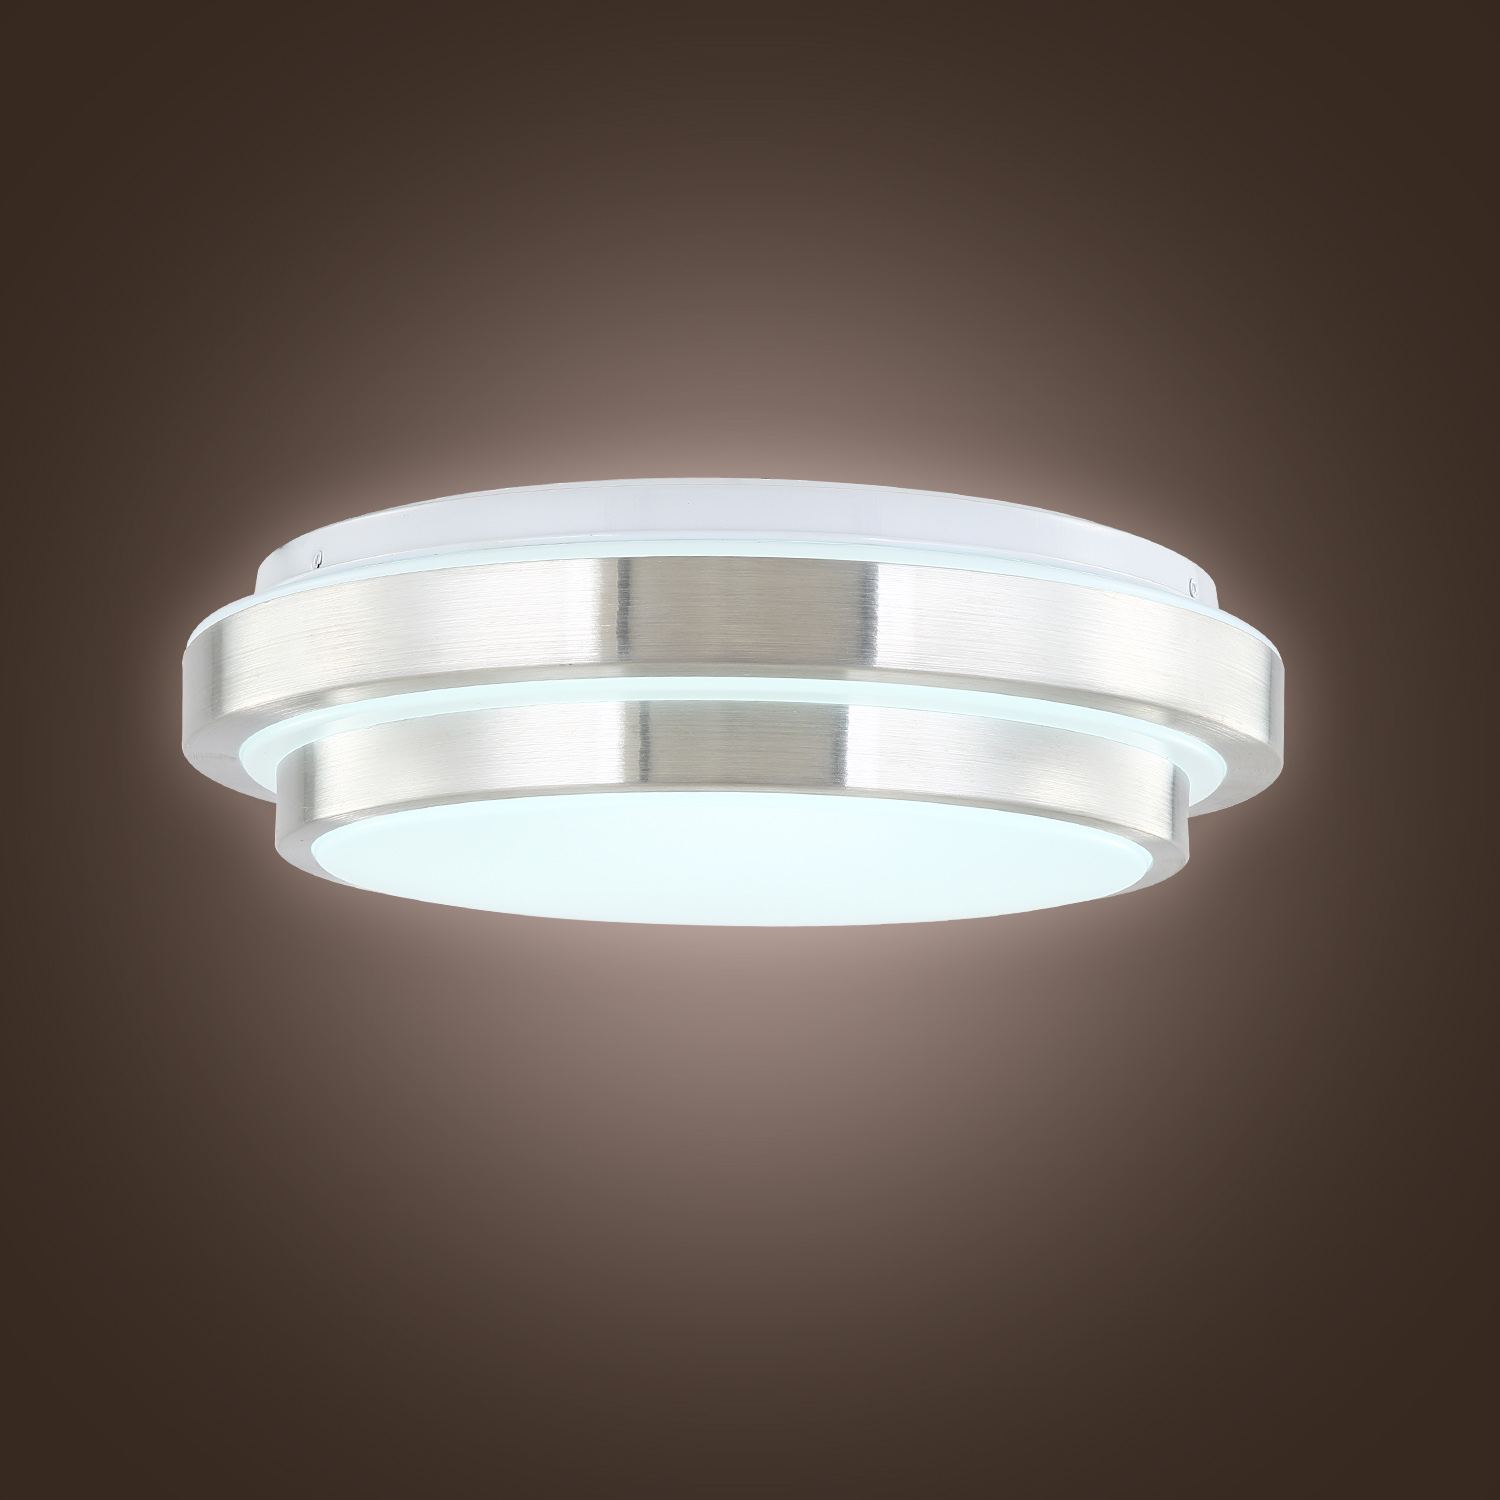 modern led flush mount 15w 1500lm aluminum acrylic ceiling light 11 round ebay. Black Bedroom Furniture Sets. Home Design Ideas